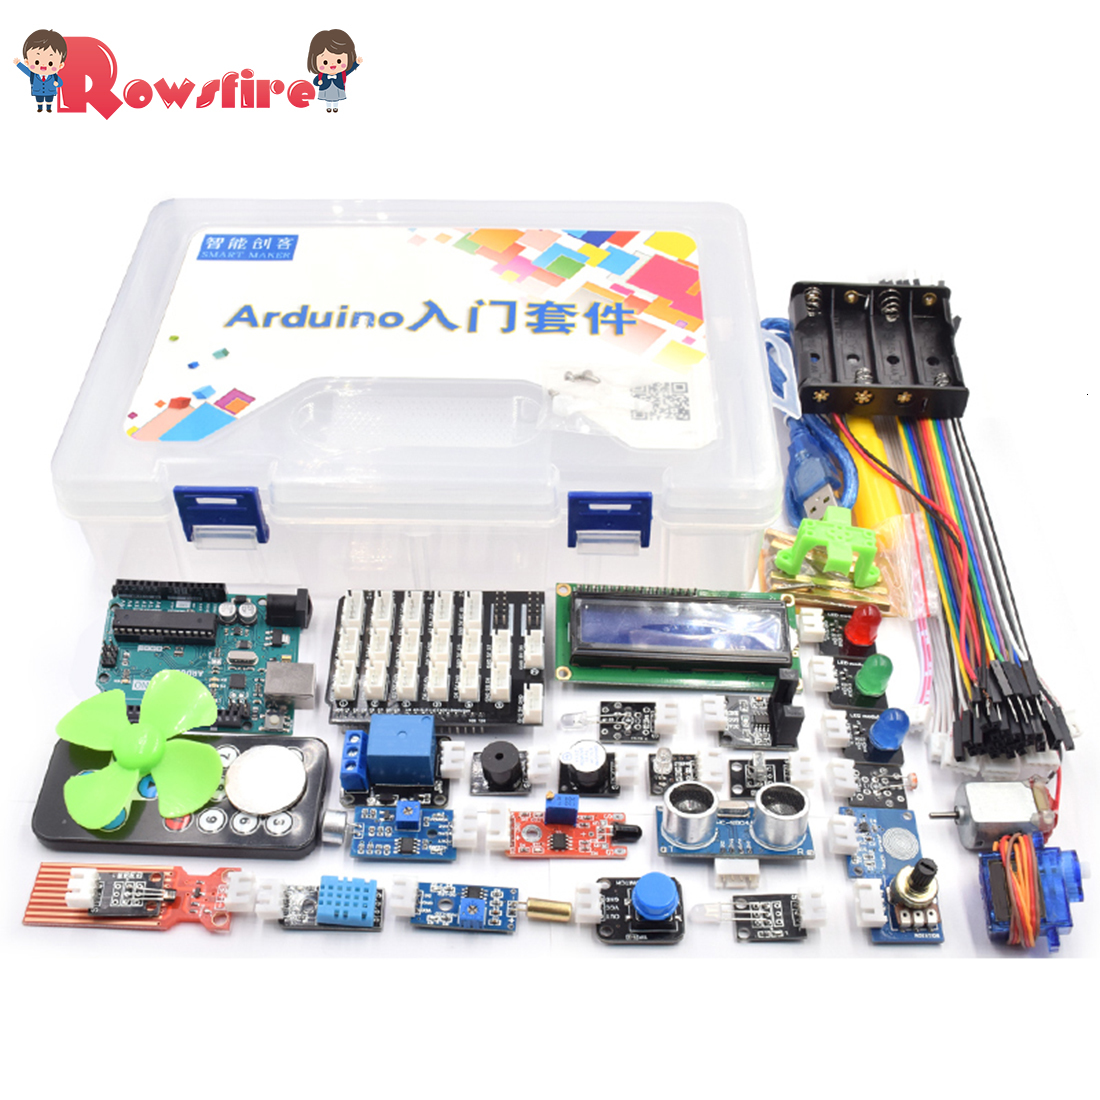 Free Shipping 1 Set Mixly Graphical Programming Learning Singlechip Development Board Kit For Arduino